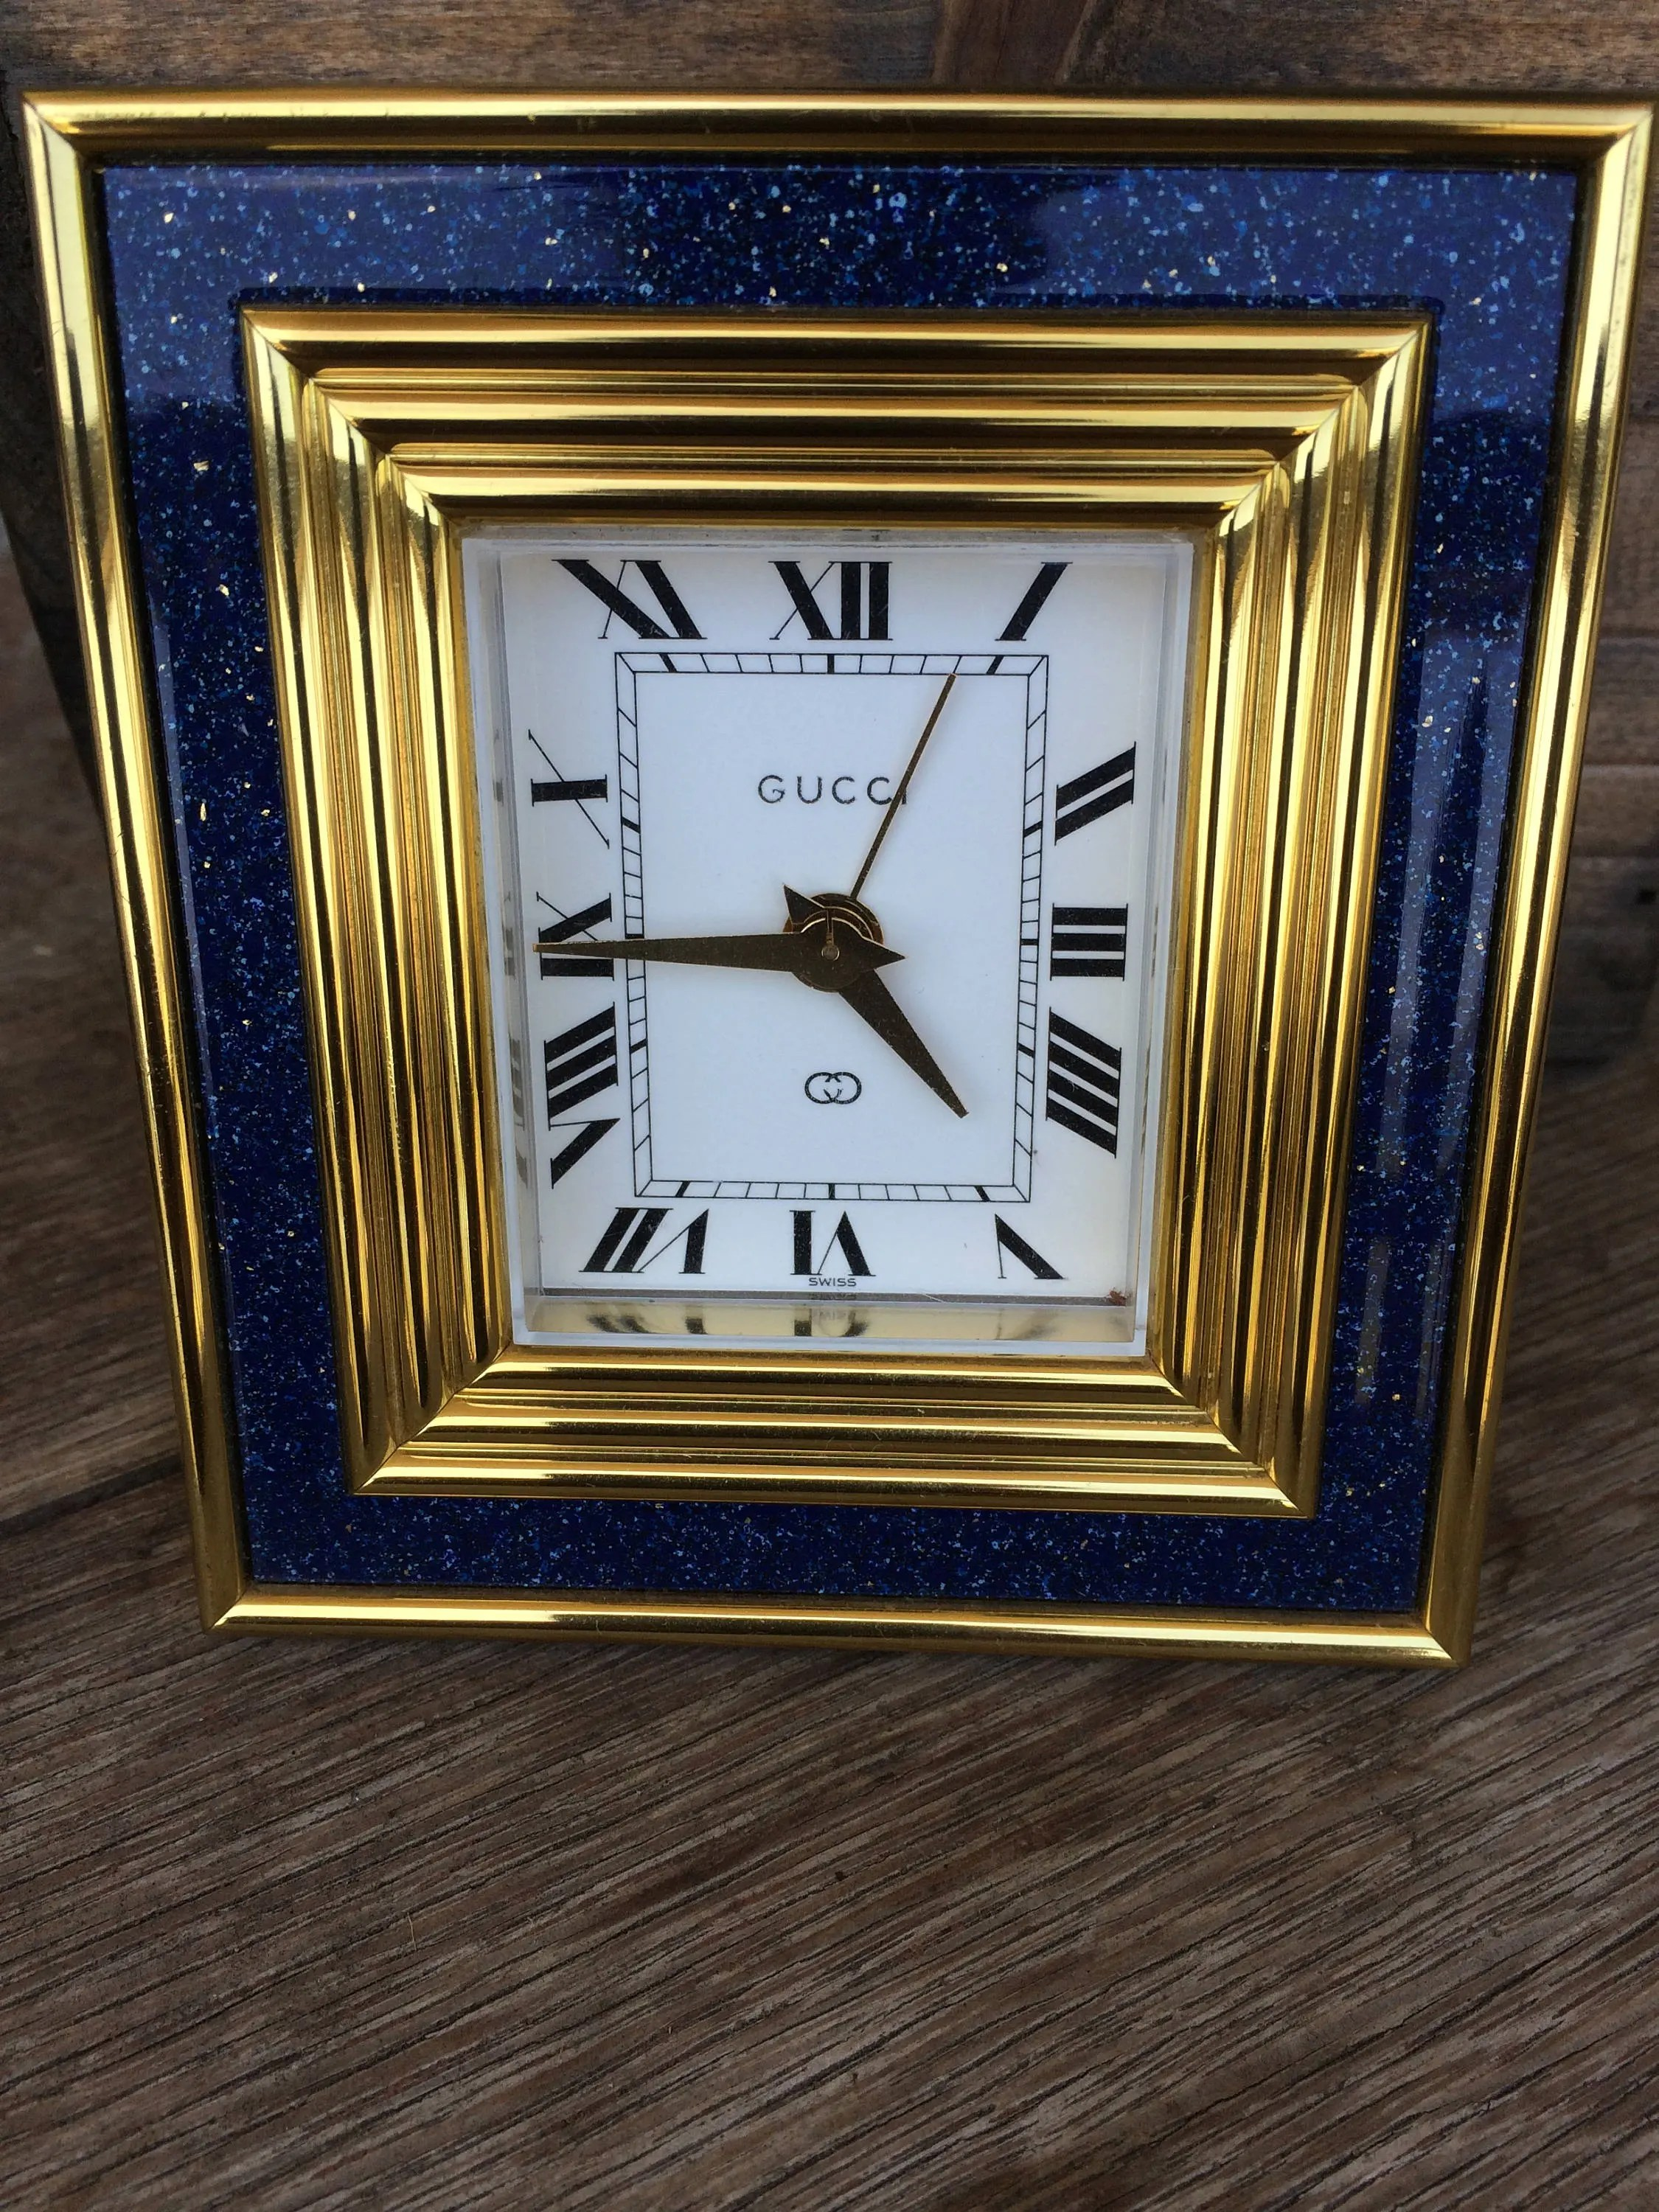 Etsy Vintage Gucci Vintage Gucci Blue Lapiz Brass 8 Day Alarm And Table Clock